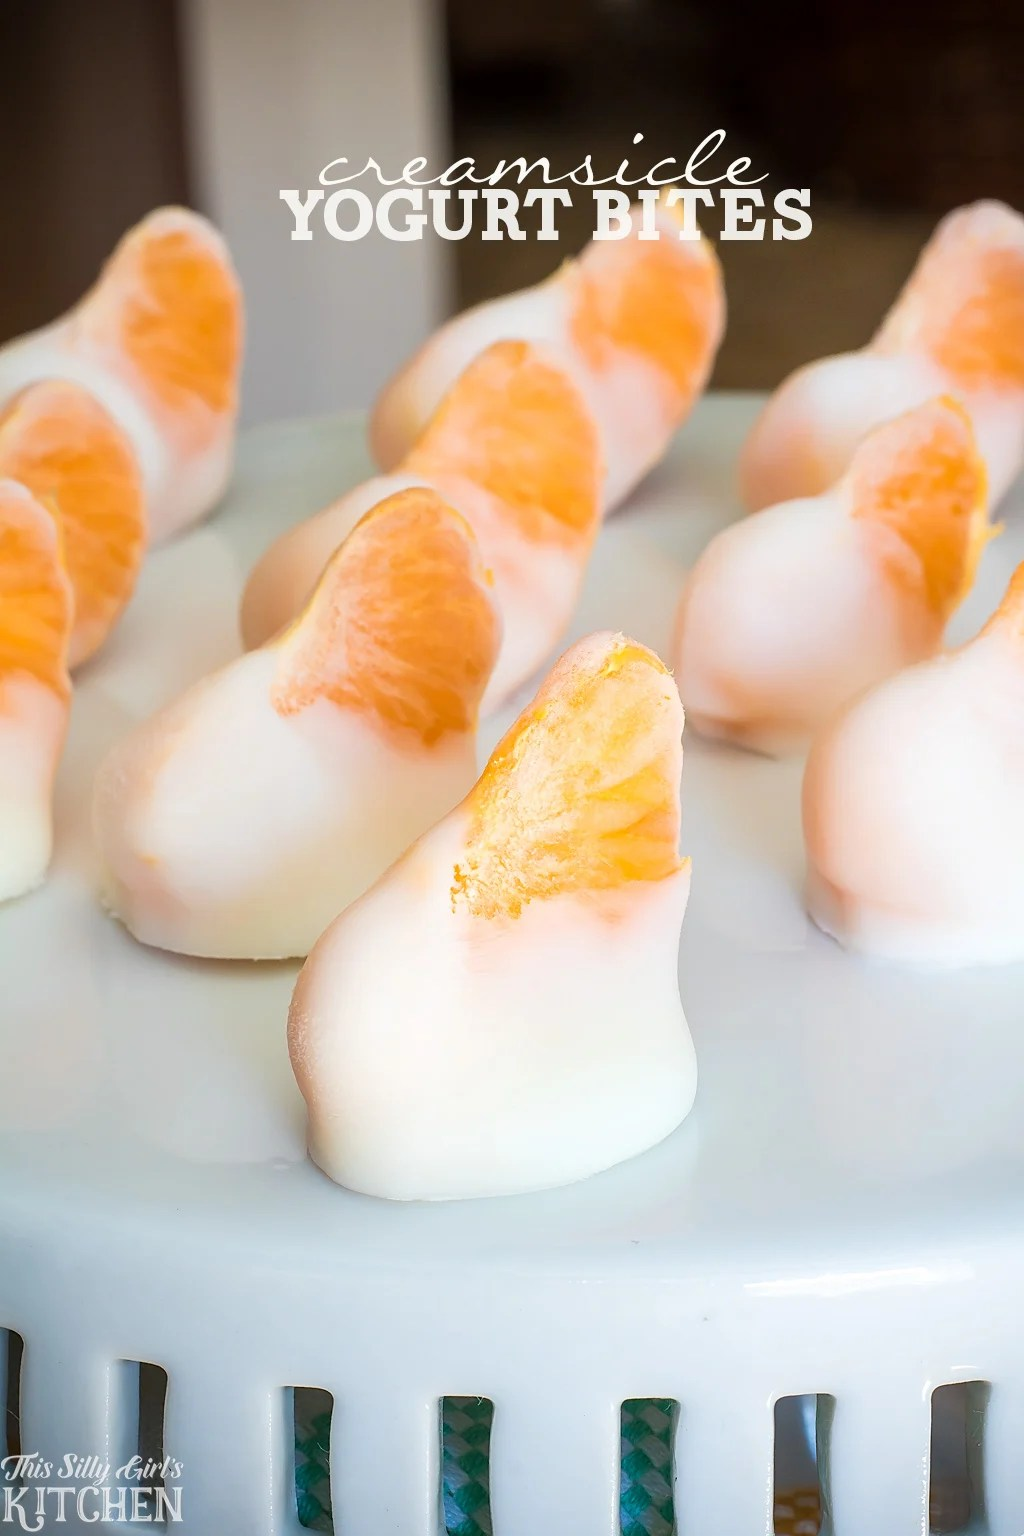 Creamsicle Yogurt Bites, clementines dipped in vanilla yogurt and frozen for a fun, healthy snack! from ThisSillyGirlsKitchen.com AD